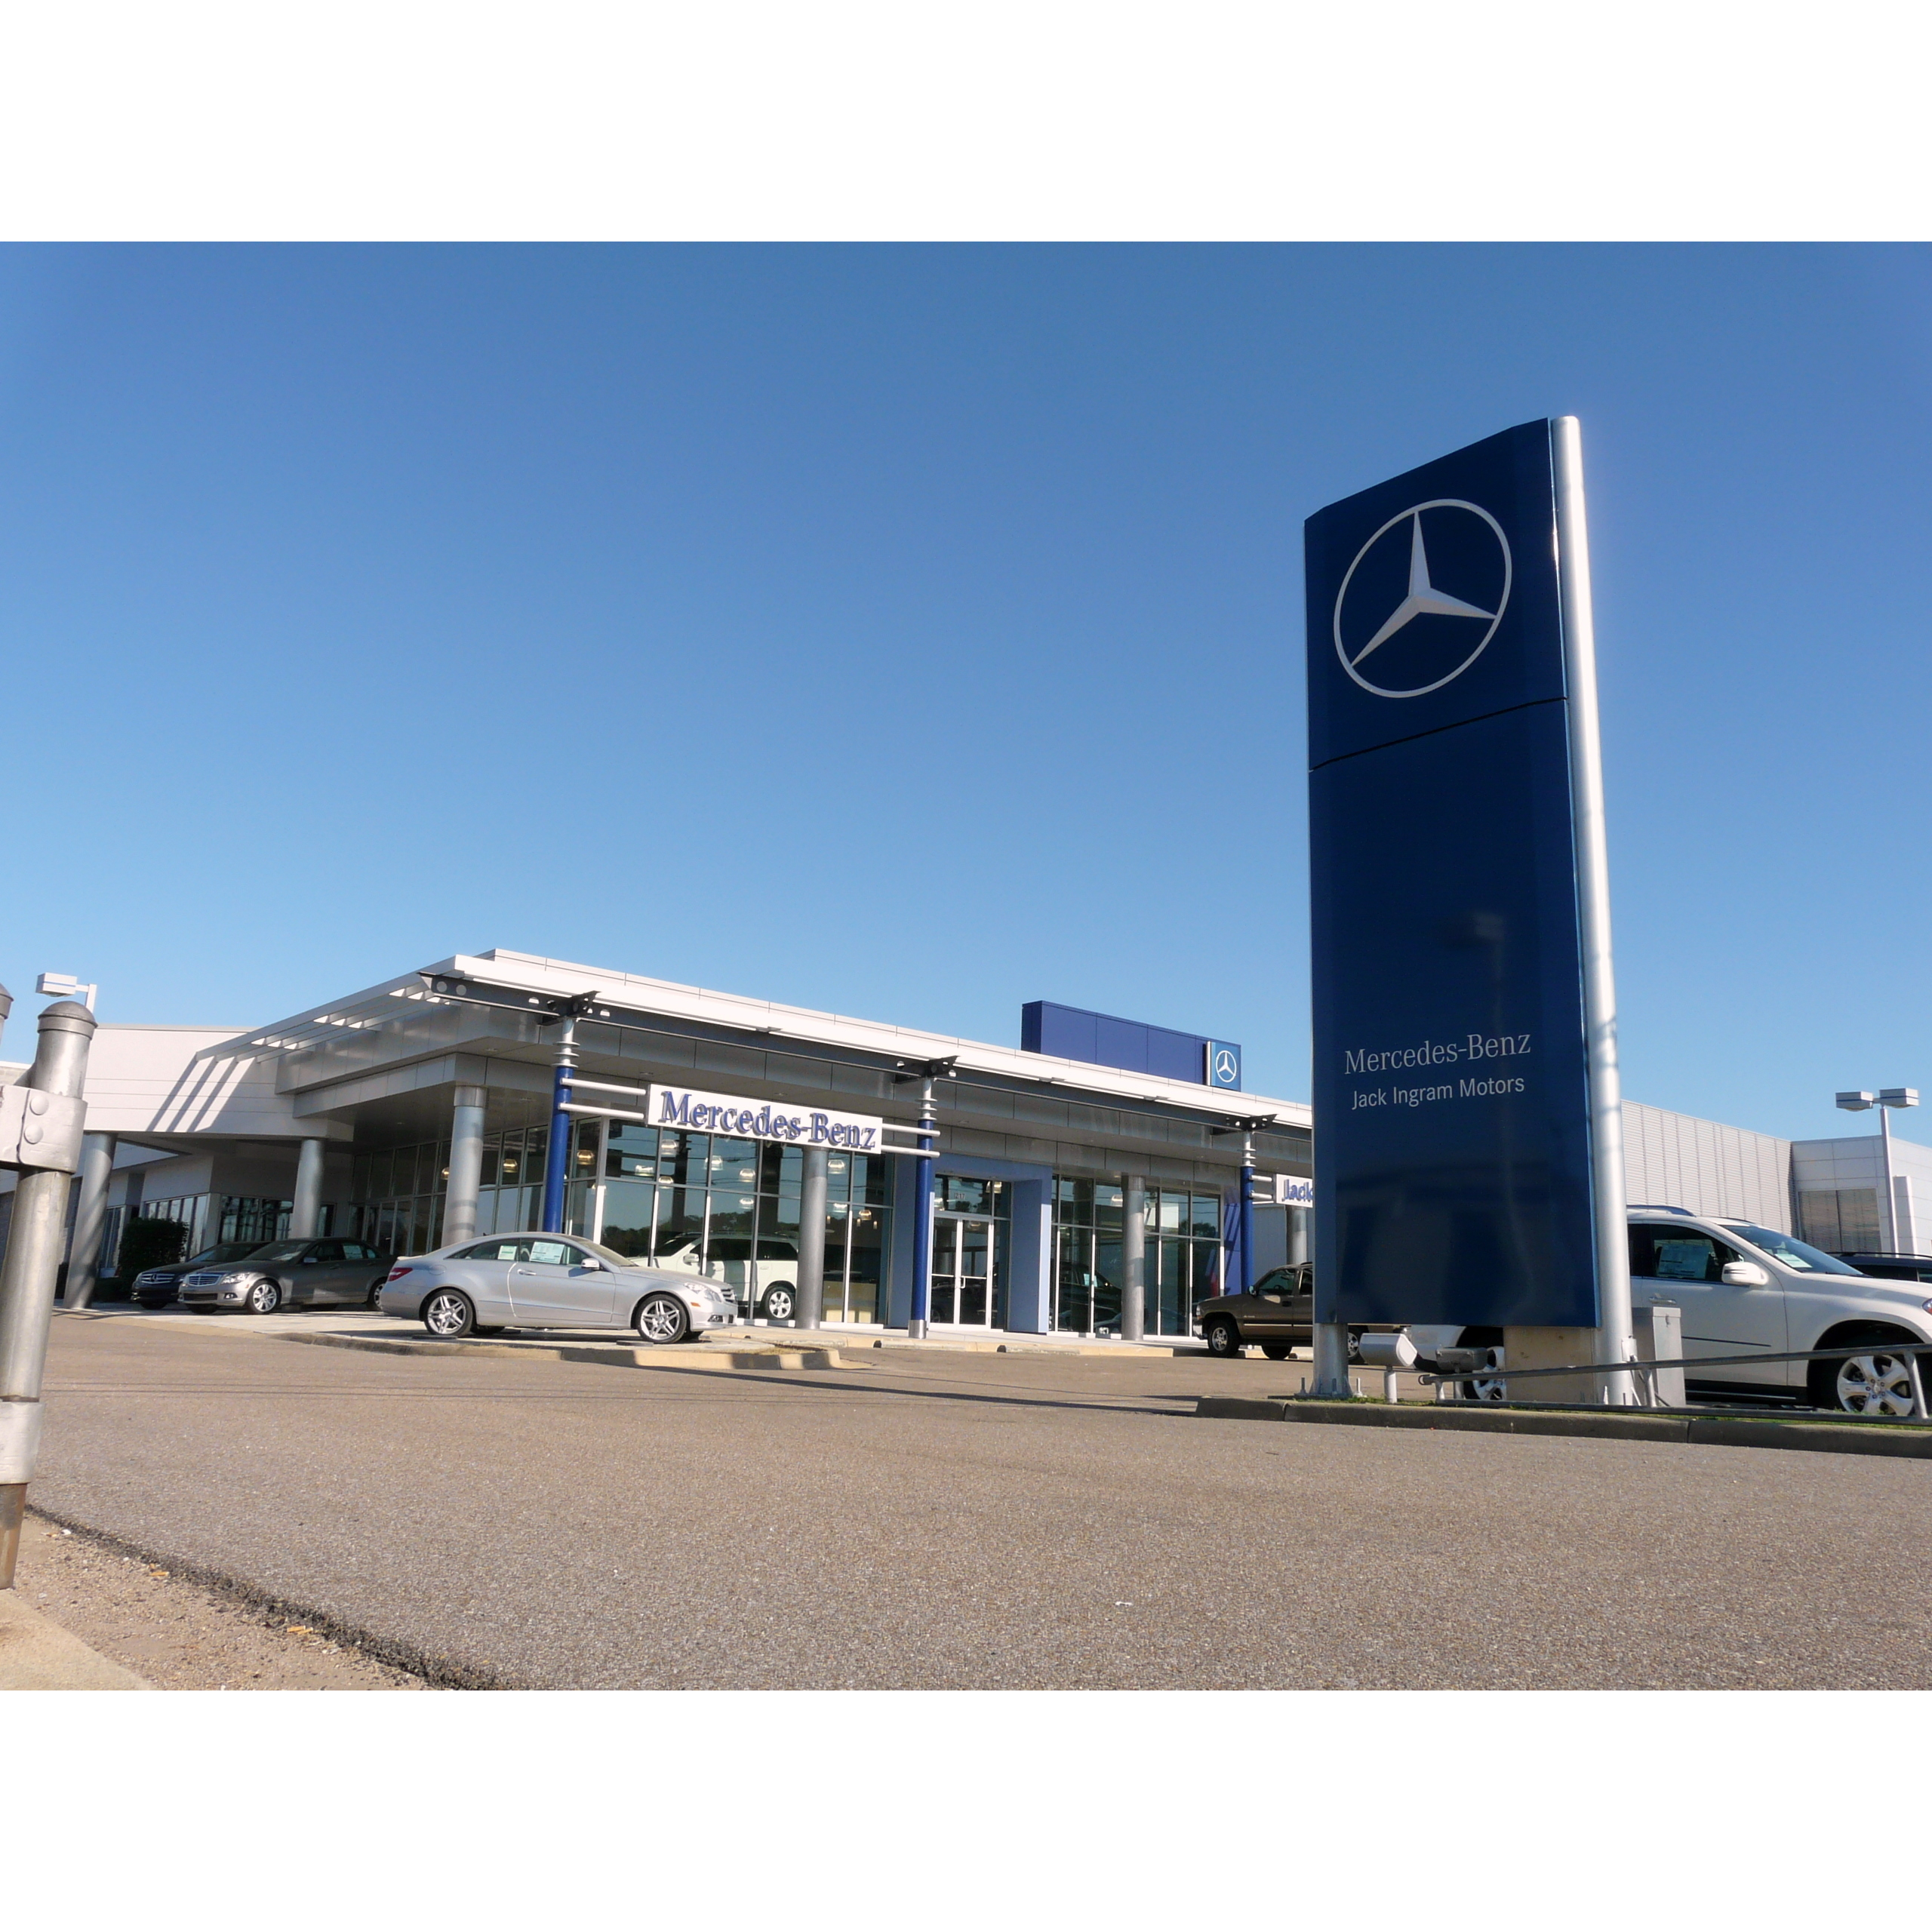 Jack Ingram Motors Inc A Mercedez Benz Dealer In